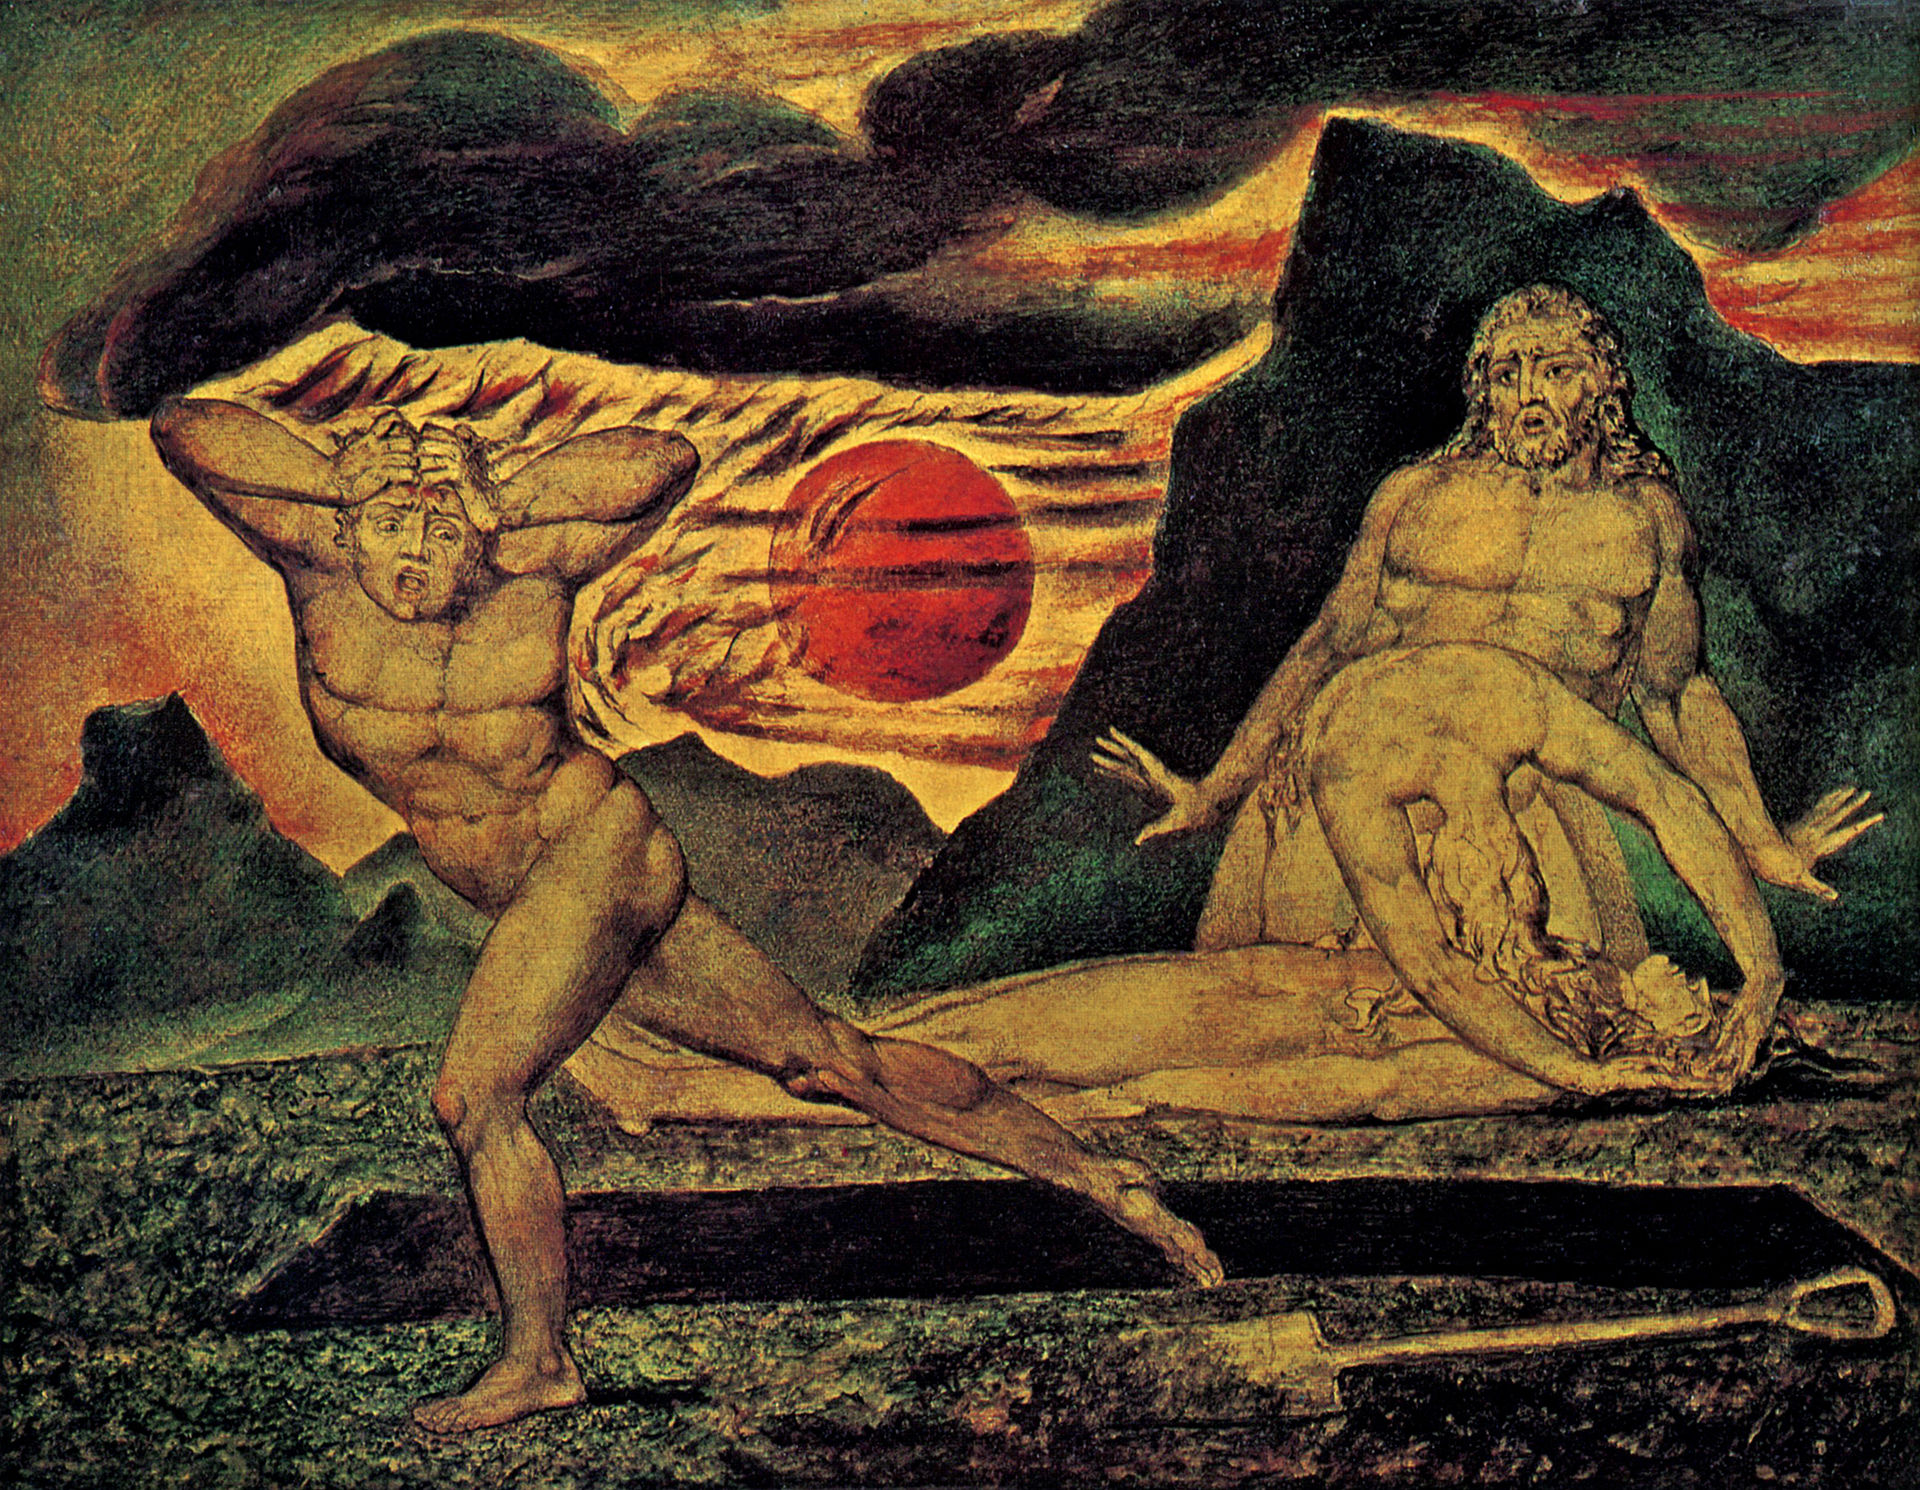 William Blake. The Body of Abel Found by Adam and Eve, c. 1825. Watercolour on wood.